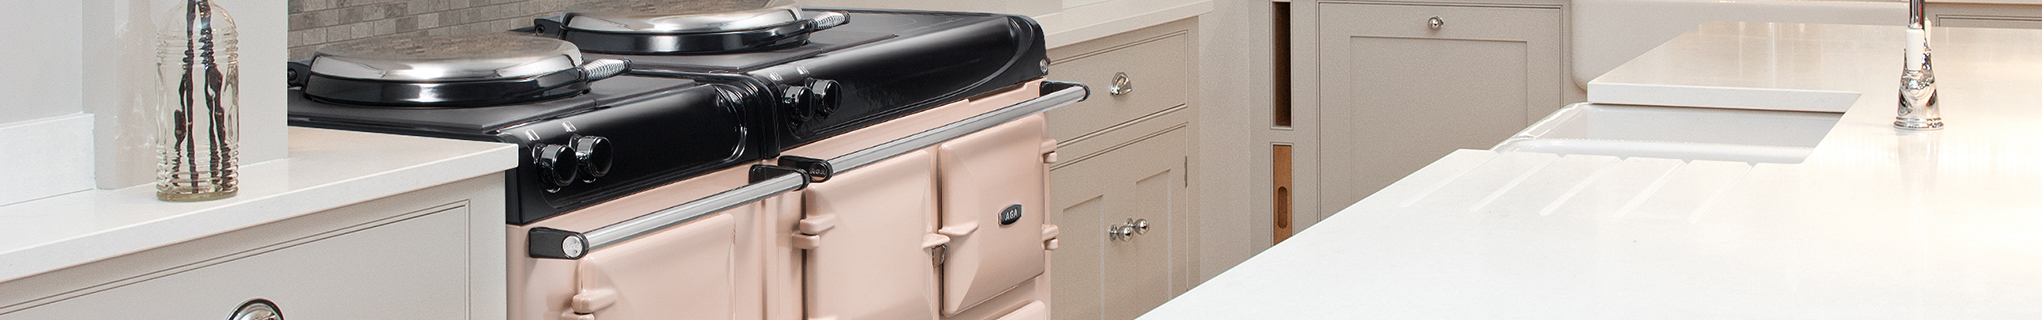 AGA eR3 160 in Blush